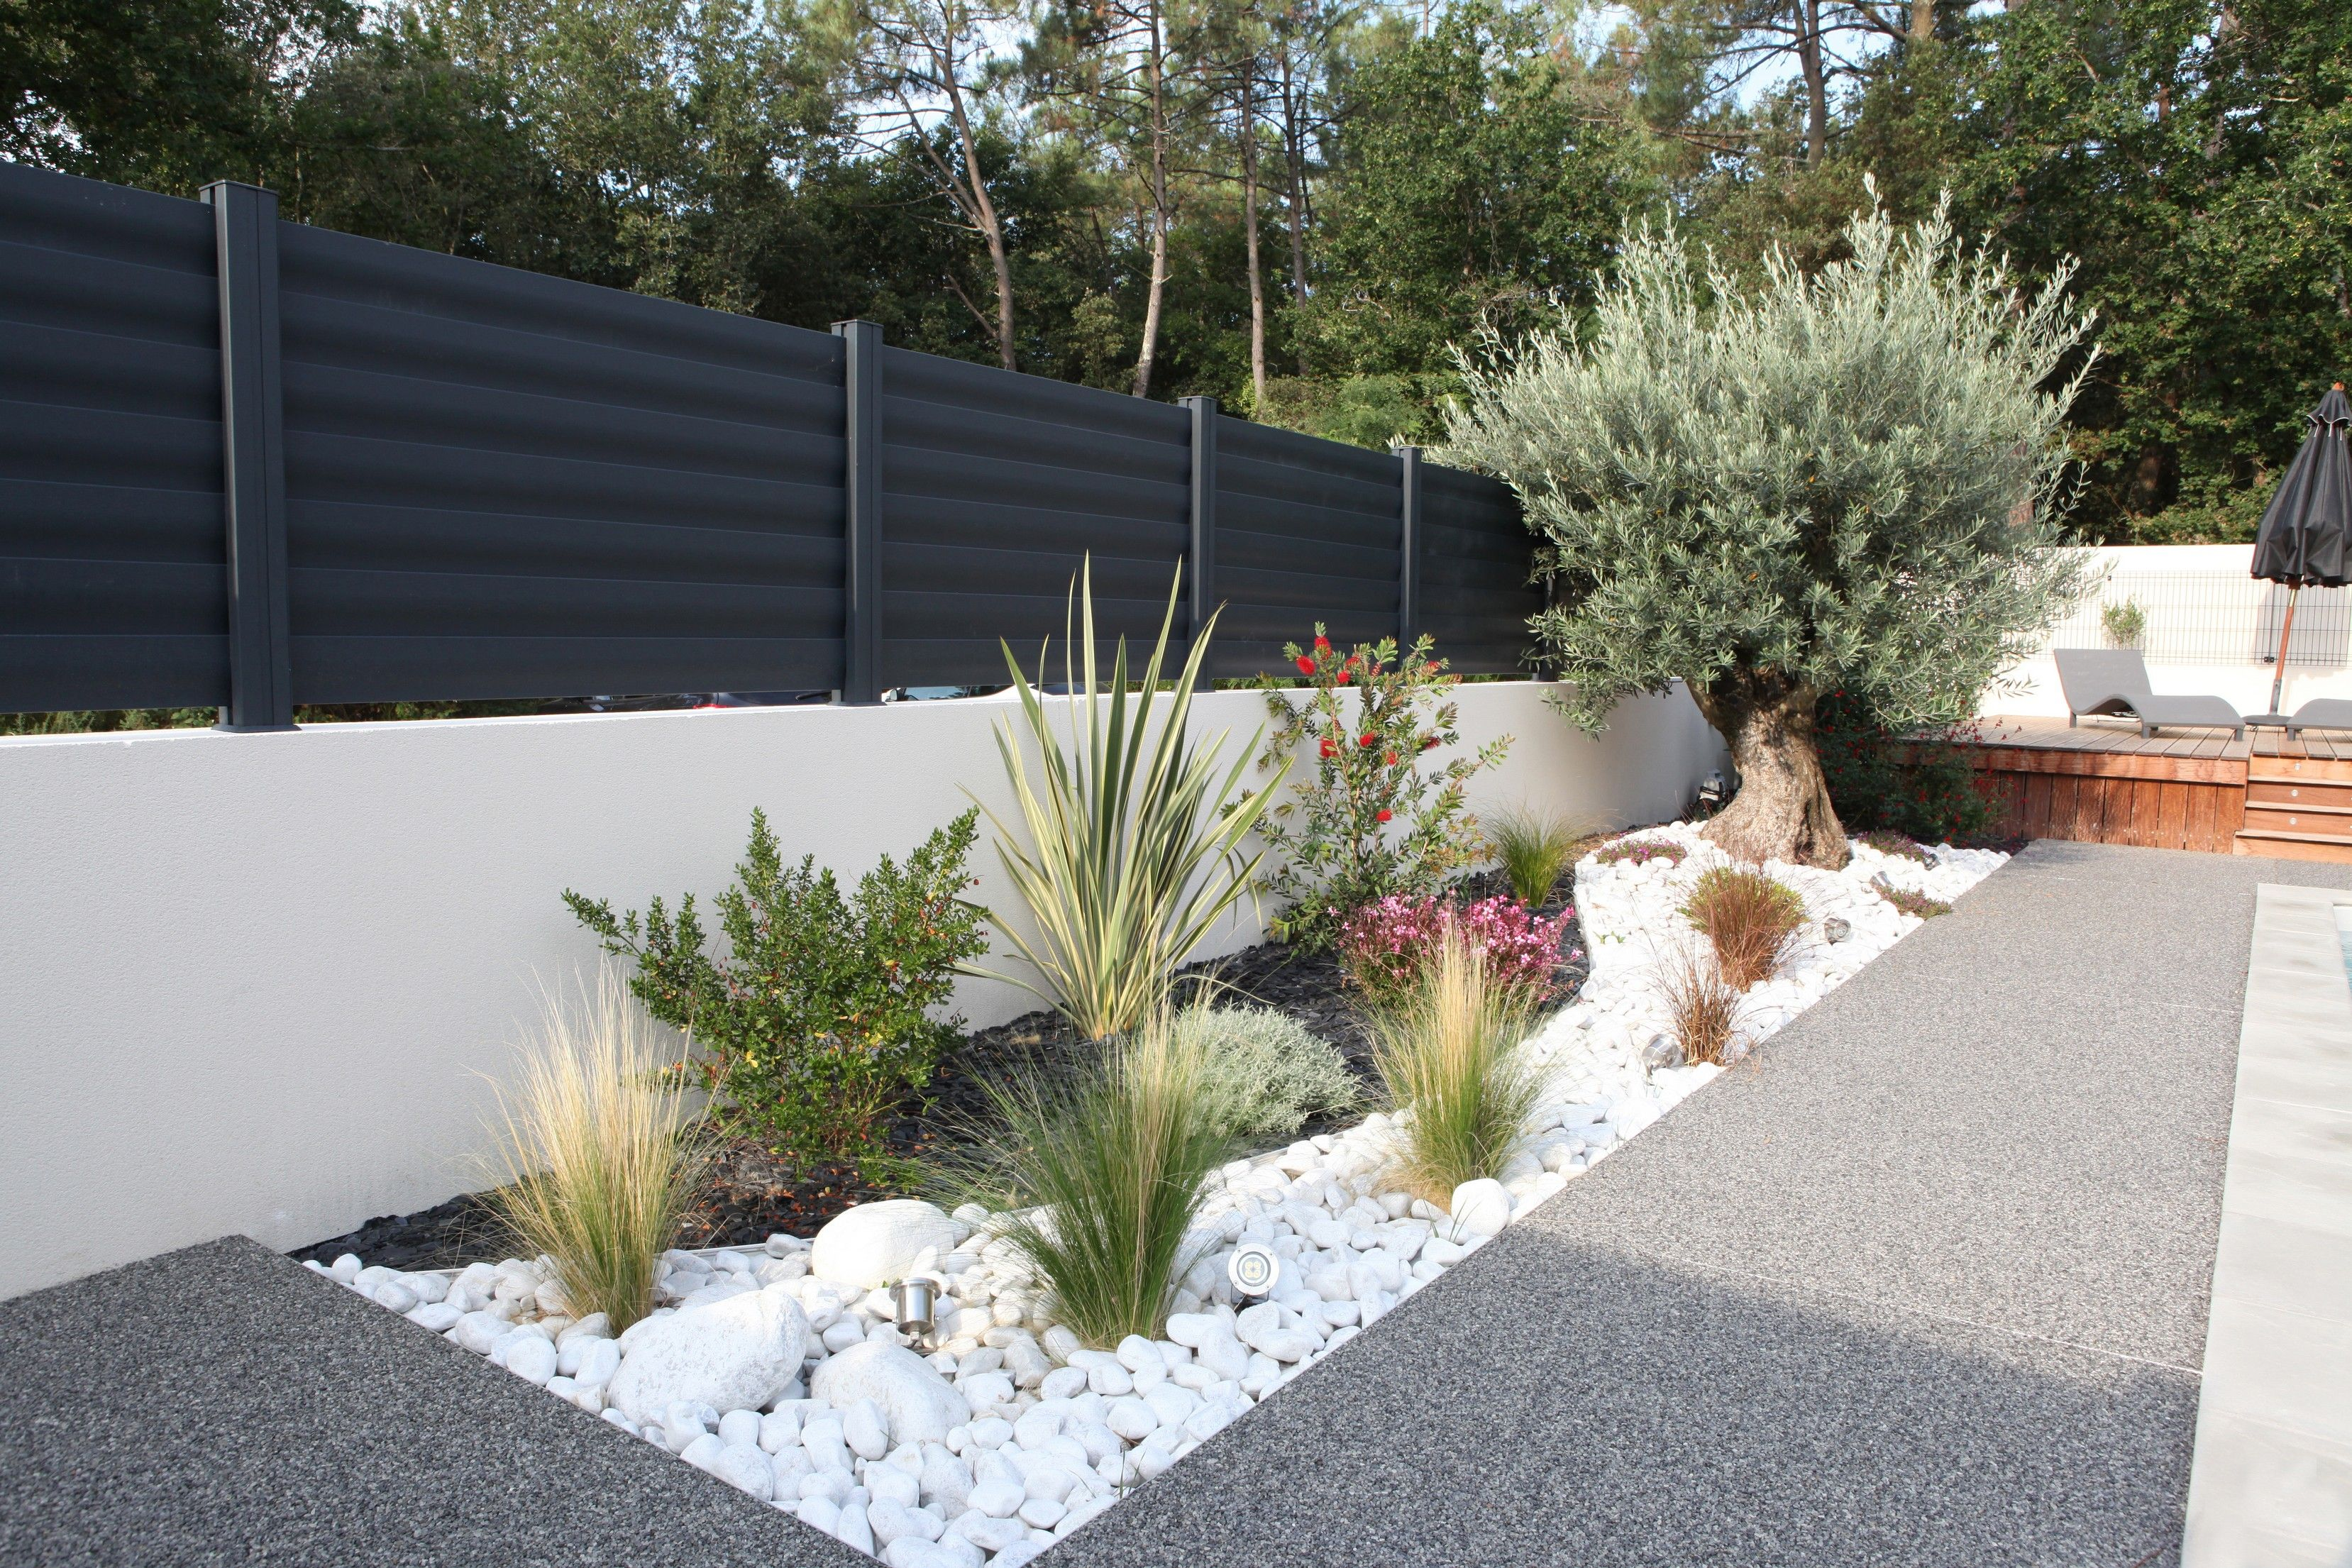 Cl tures aluminium mod le brise vue menuiserie cloturel for Exemple amenagement jardin exterieur